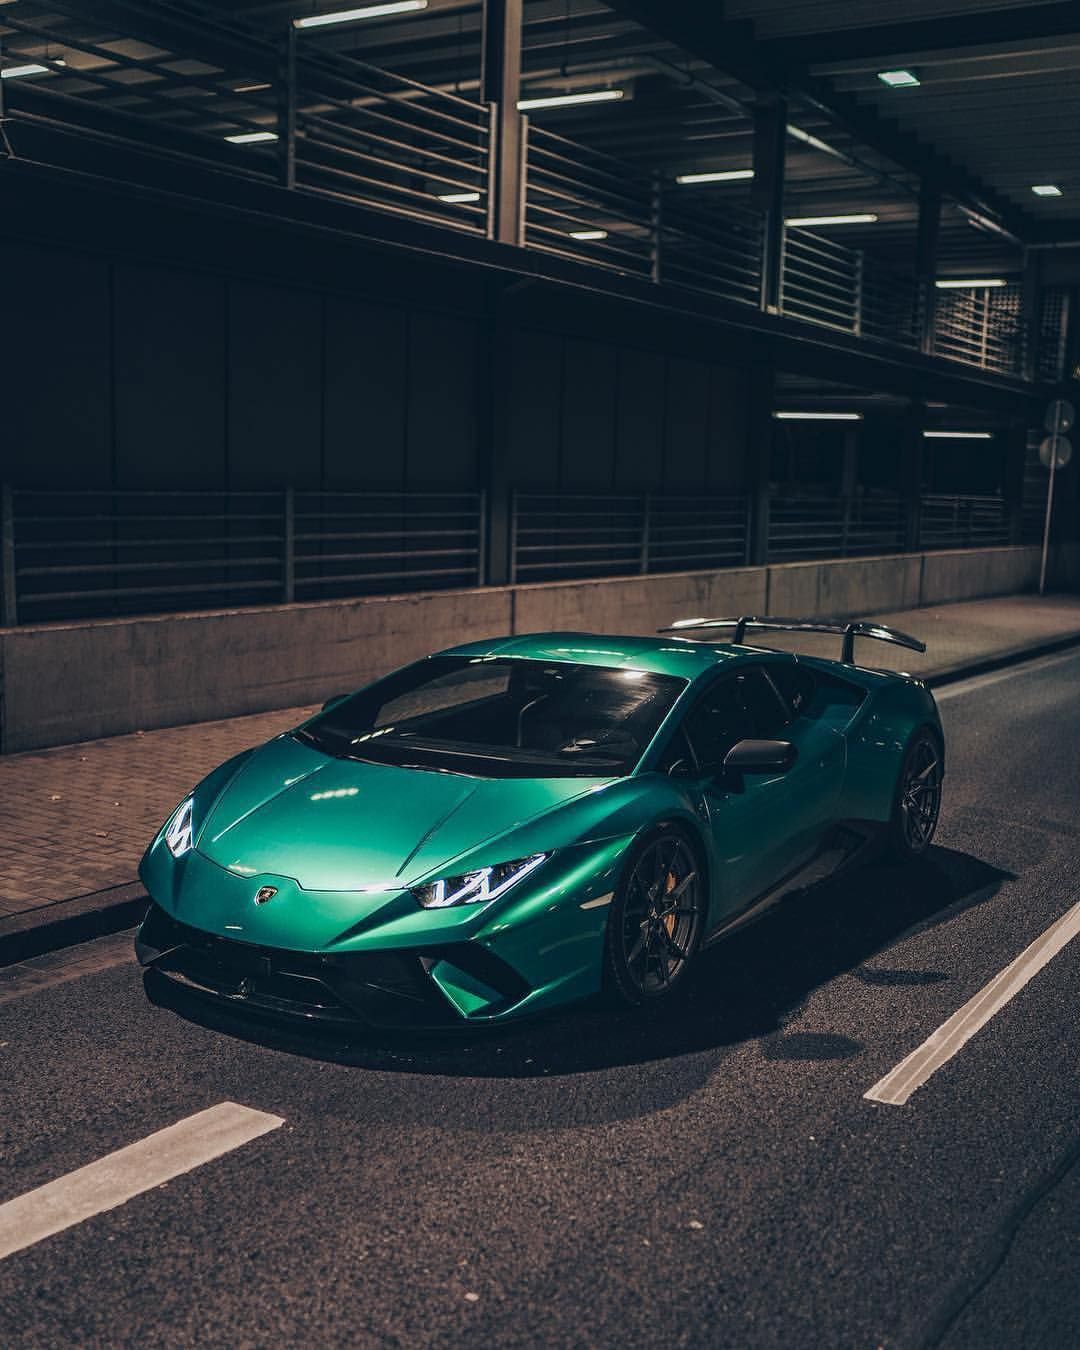 Supercars Gallery: Sports Cars You Can Daily Drive